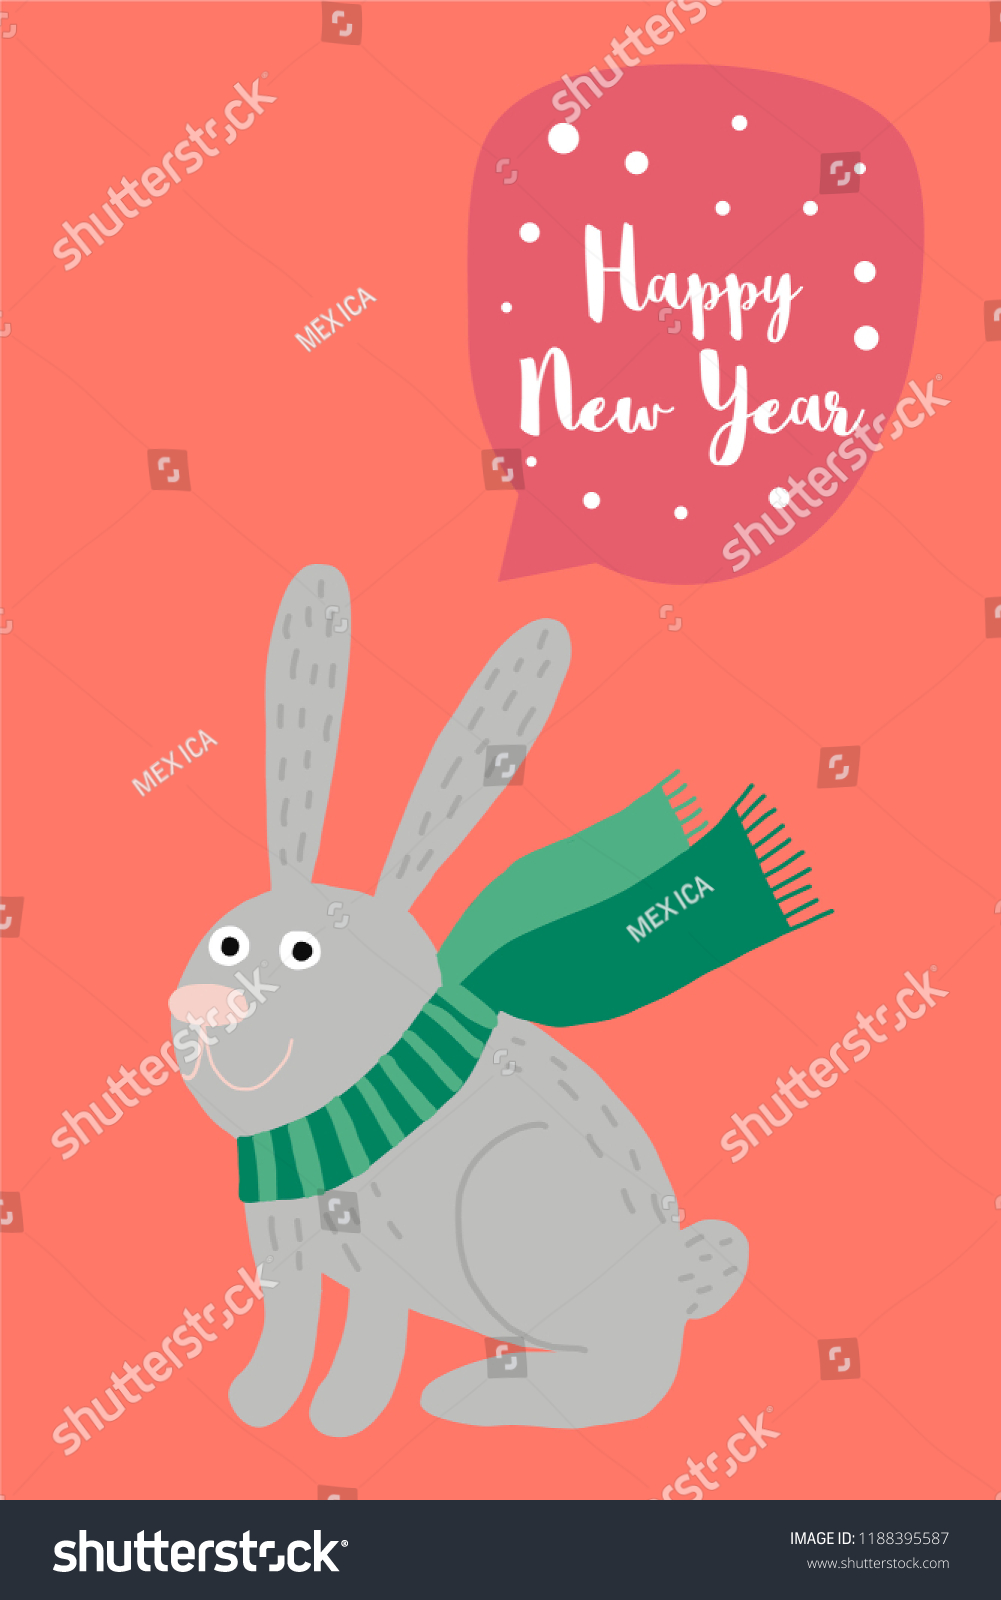 cute little bunny and happy new year wishes poster card christmas decoration for